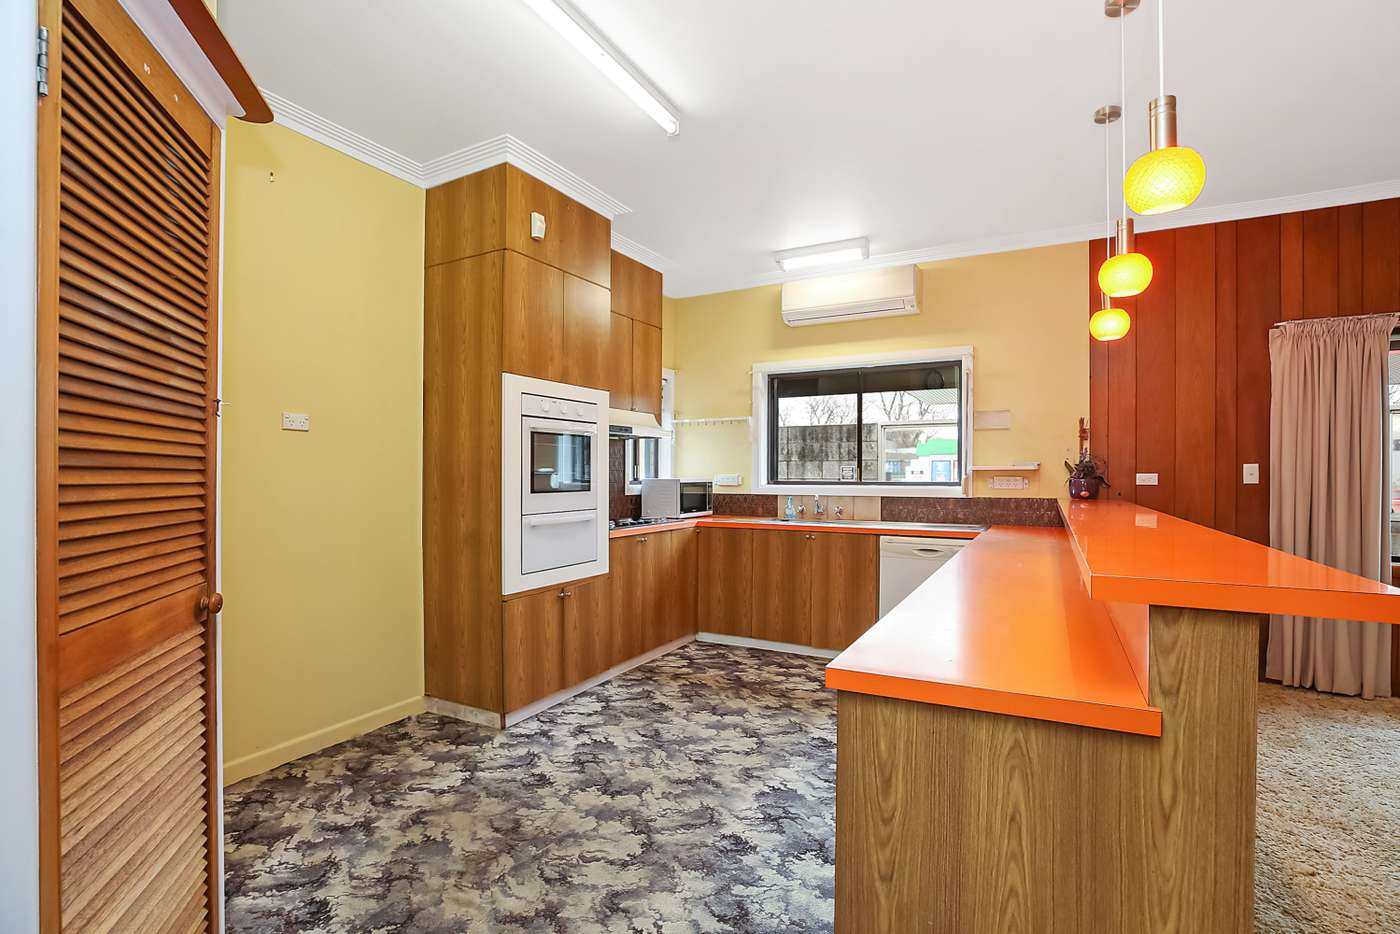 Sixth view of Homely house listing, 99 Manifold Street, Camperdown VIC 3260